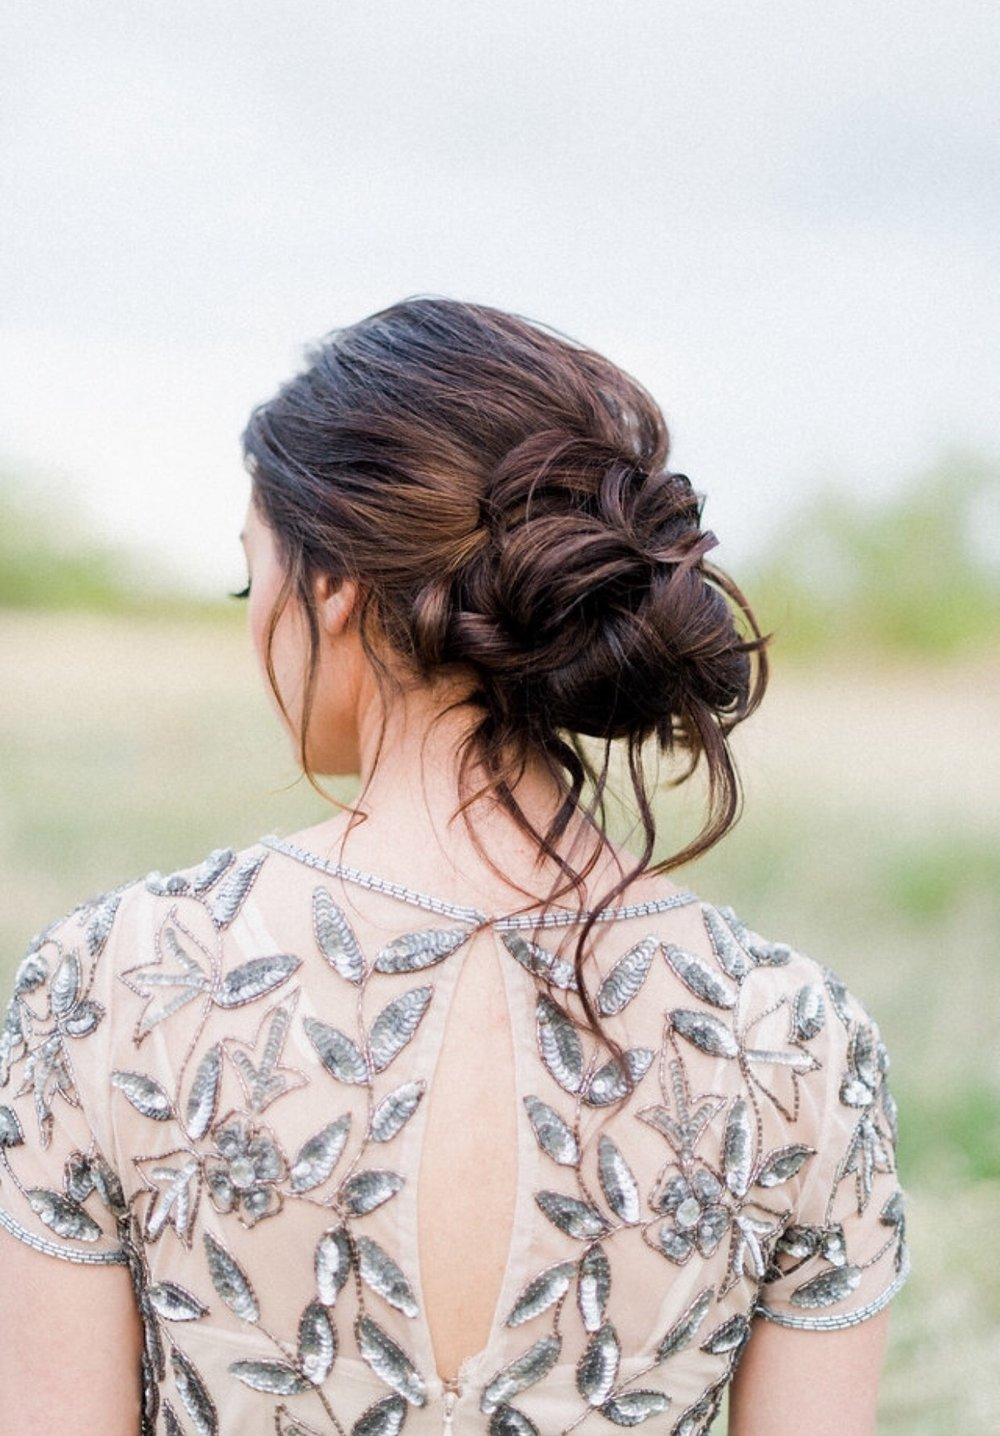 Denver-wedding-hairstylist-messy-updo